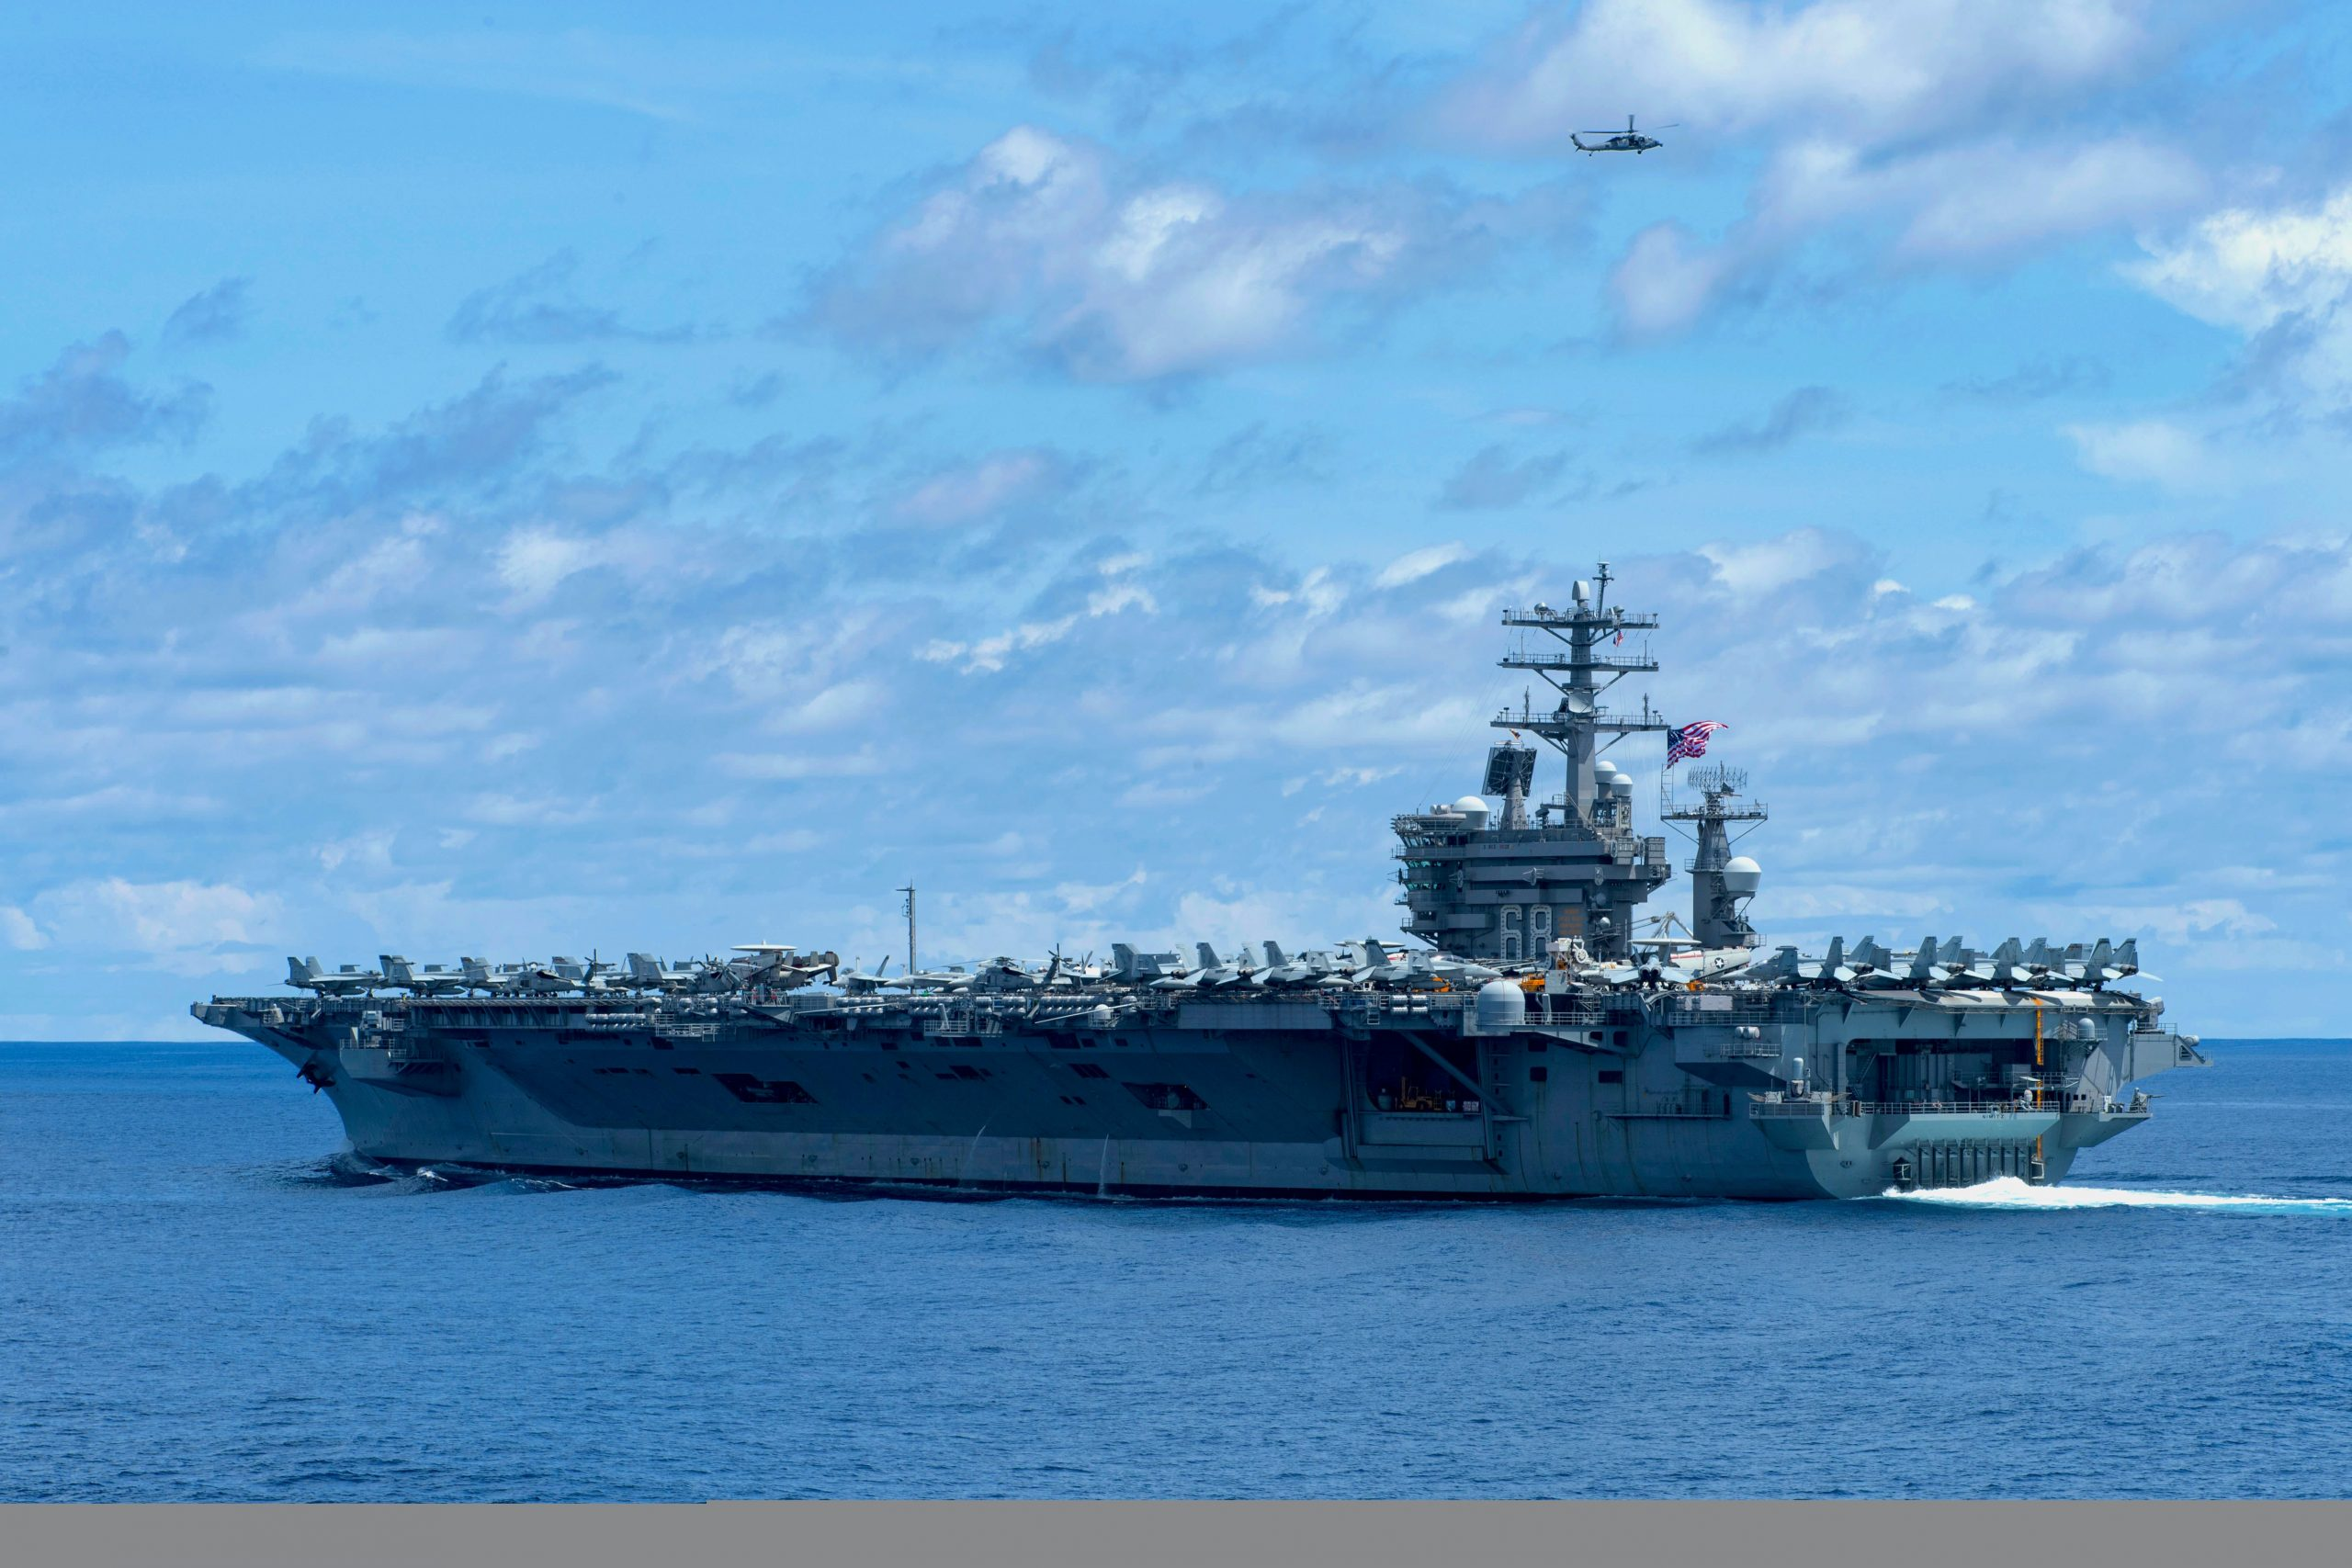 US nuclear aircraft carrier USS Nimitz enters Indo-Pacific region